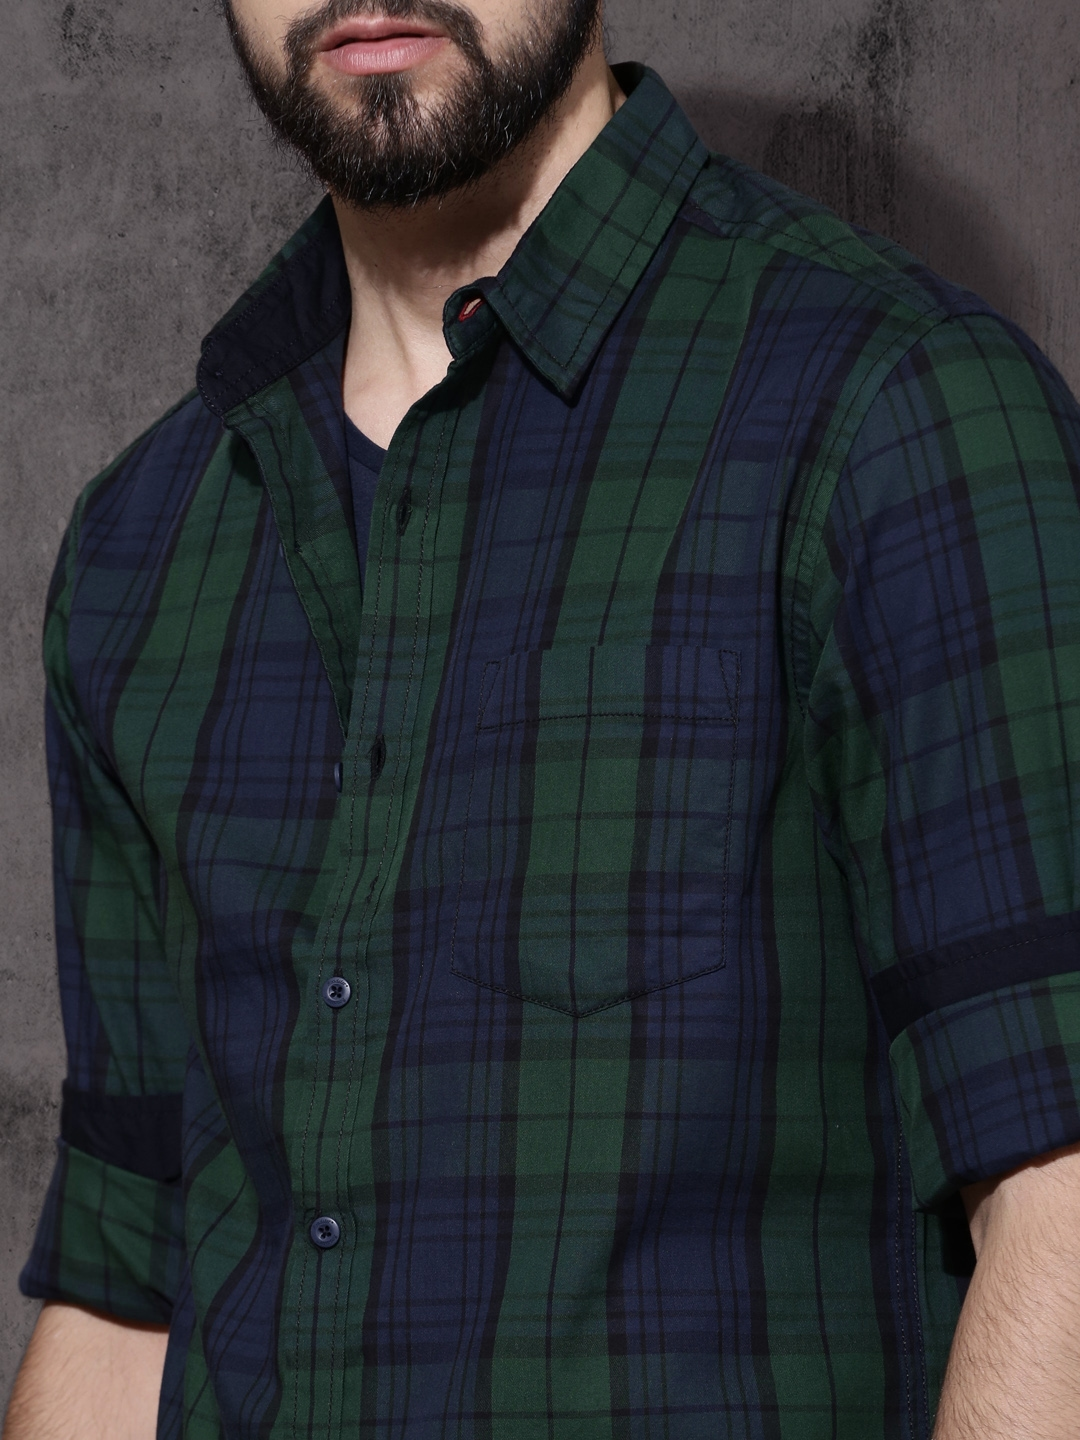 64e4be9c4c6 Buy Roadster Men Navy Blue   Green Regular Fit Checked Casual Shirt ...